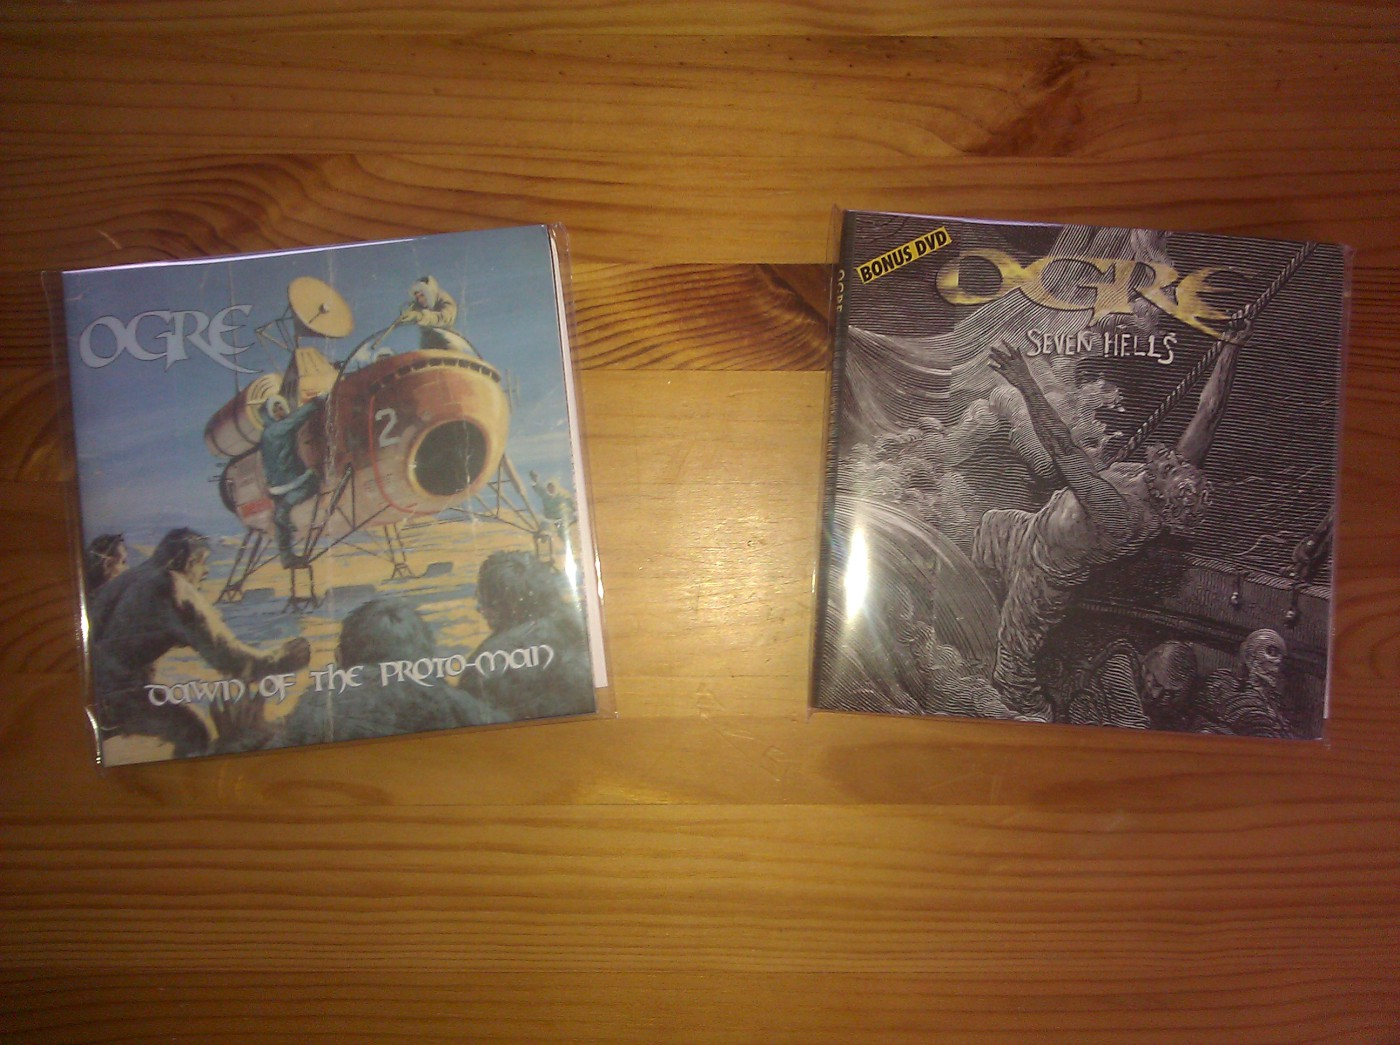 ogre dawn of the proto-man and seven hells cds